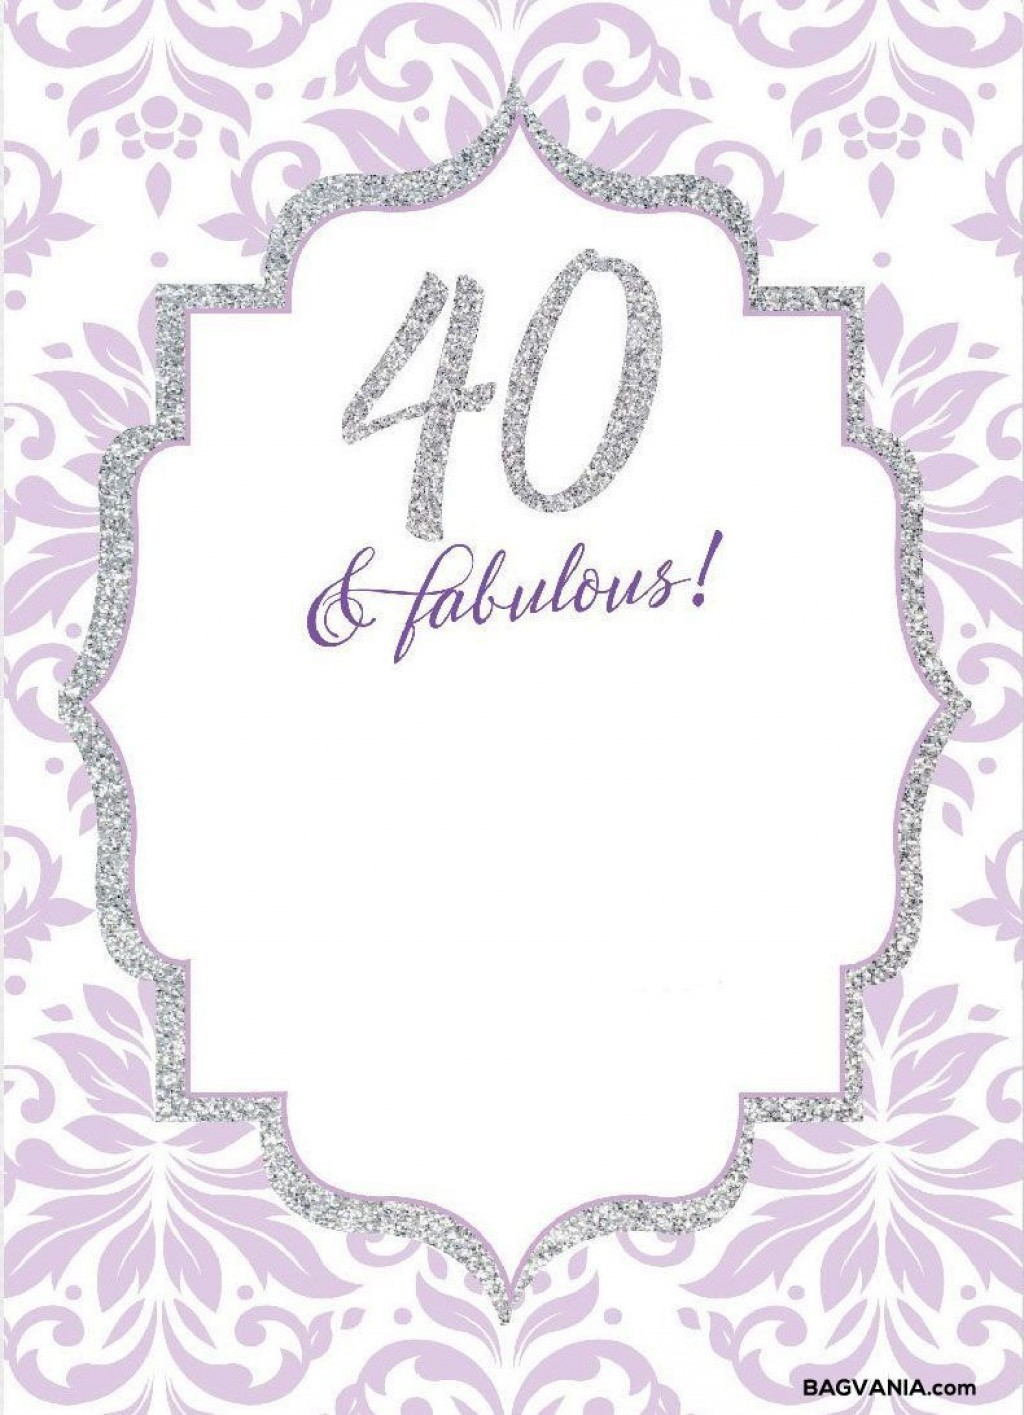 008 Wonderful 40th Birthday Party Invite Template Free Idea Large